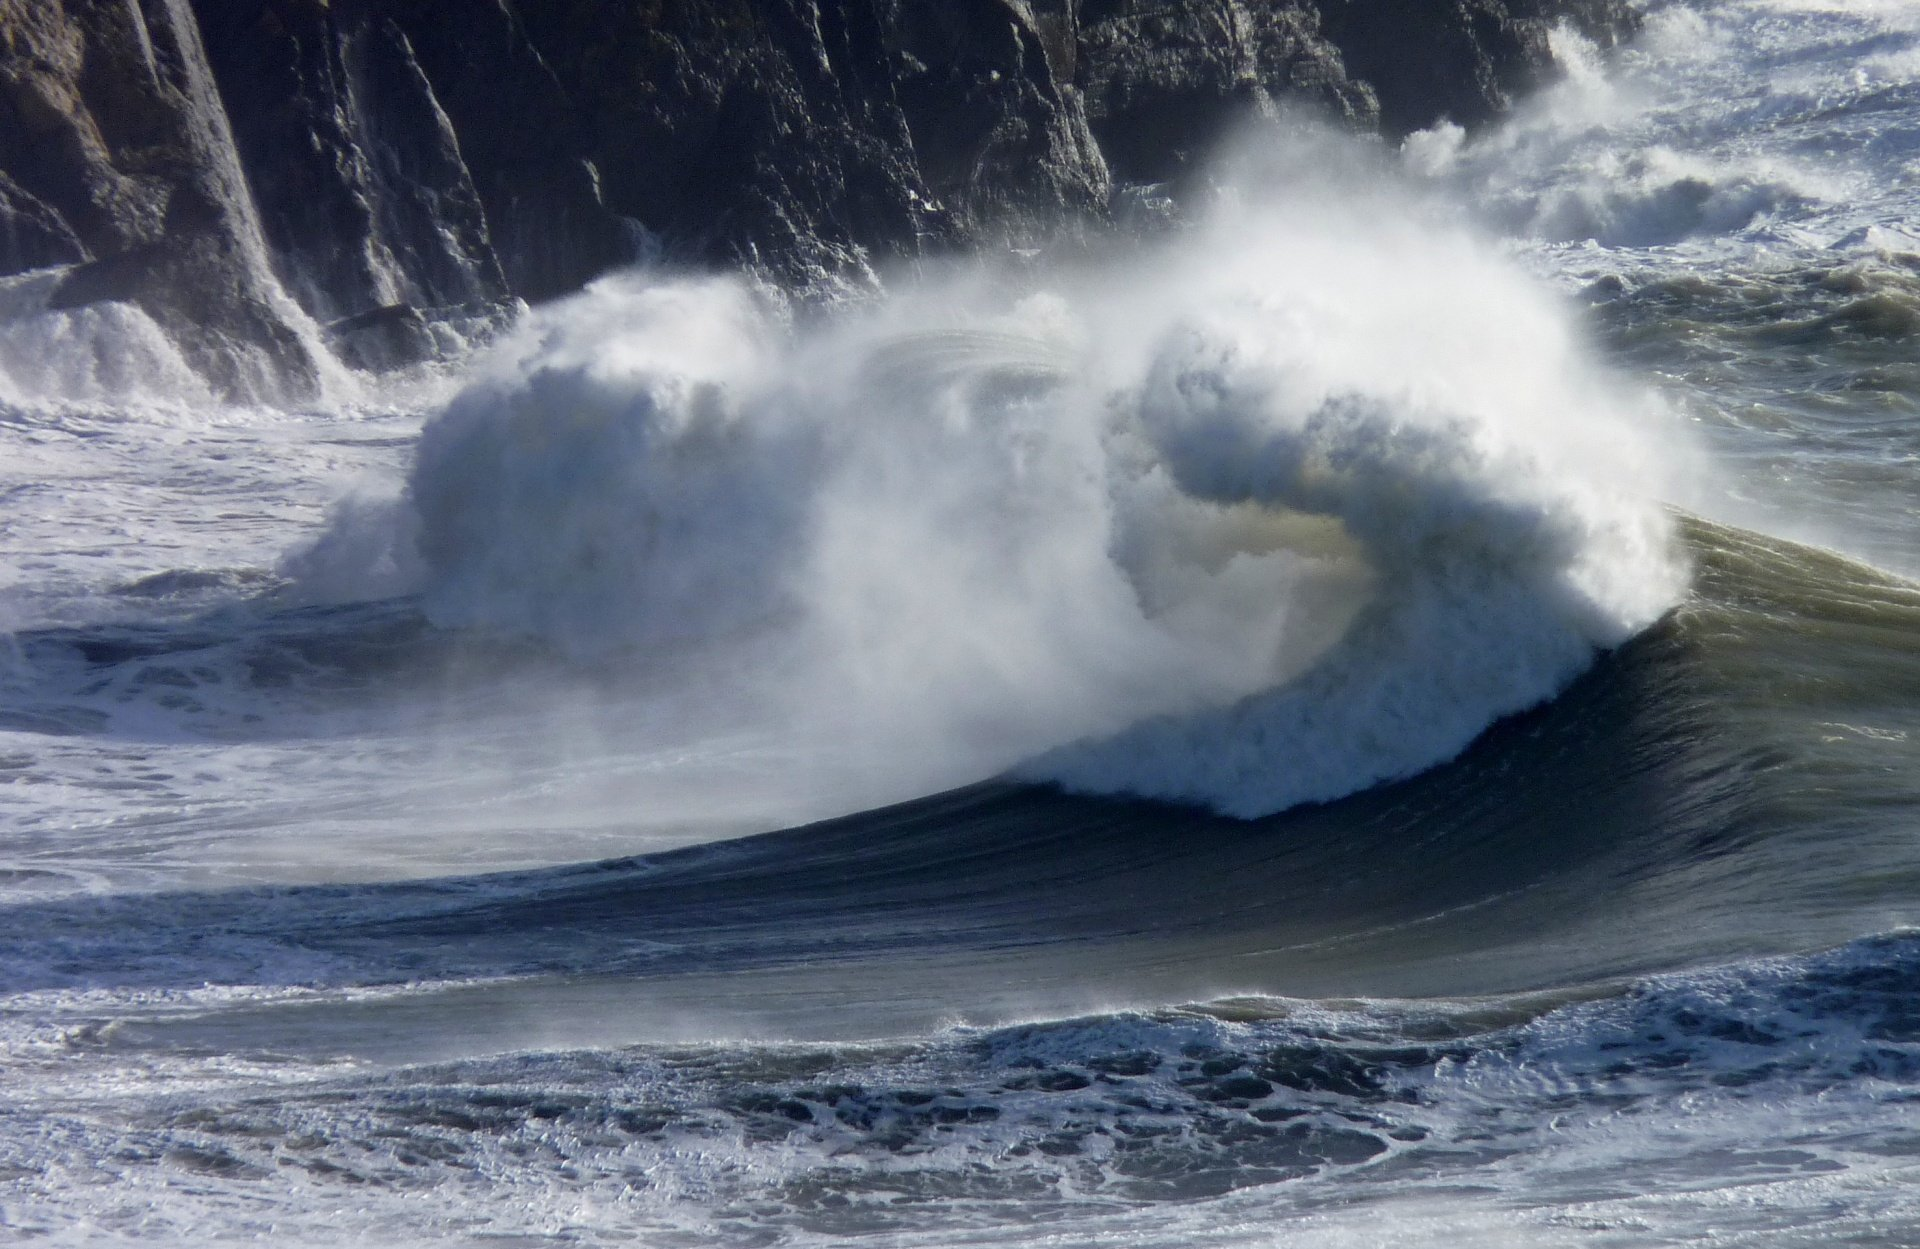 Mark Green's photo of Hells Mouth